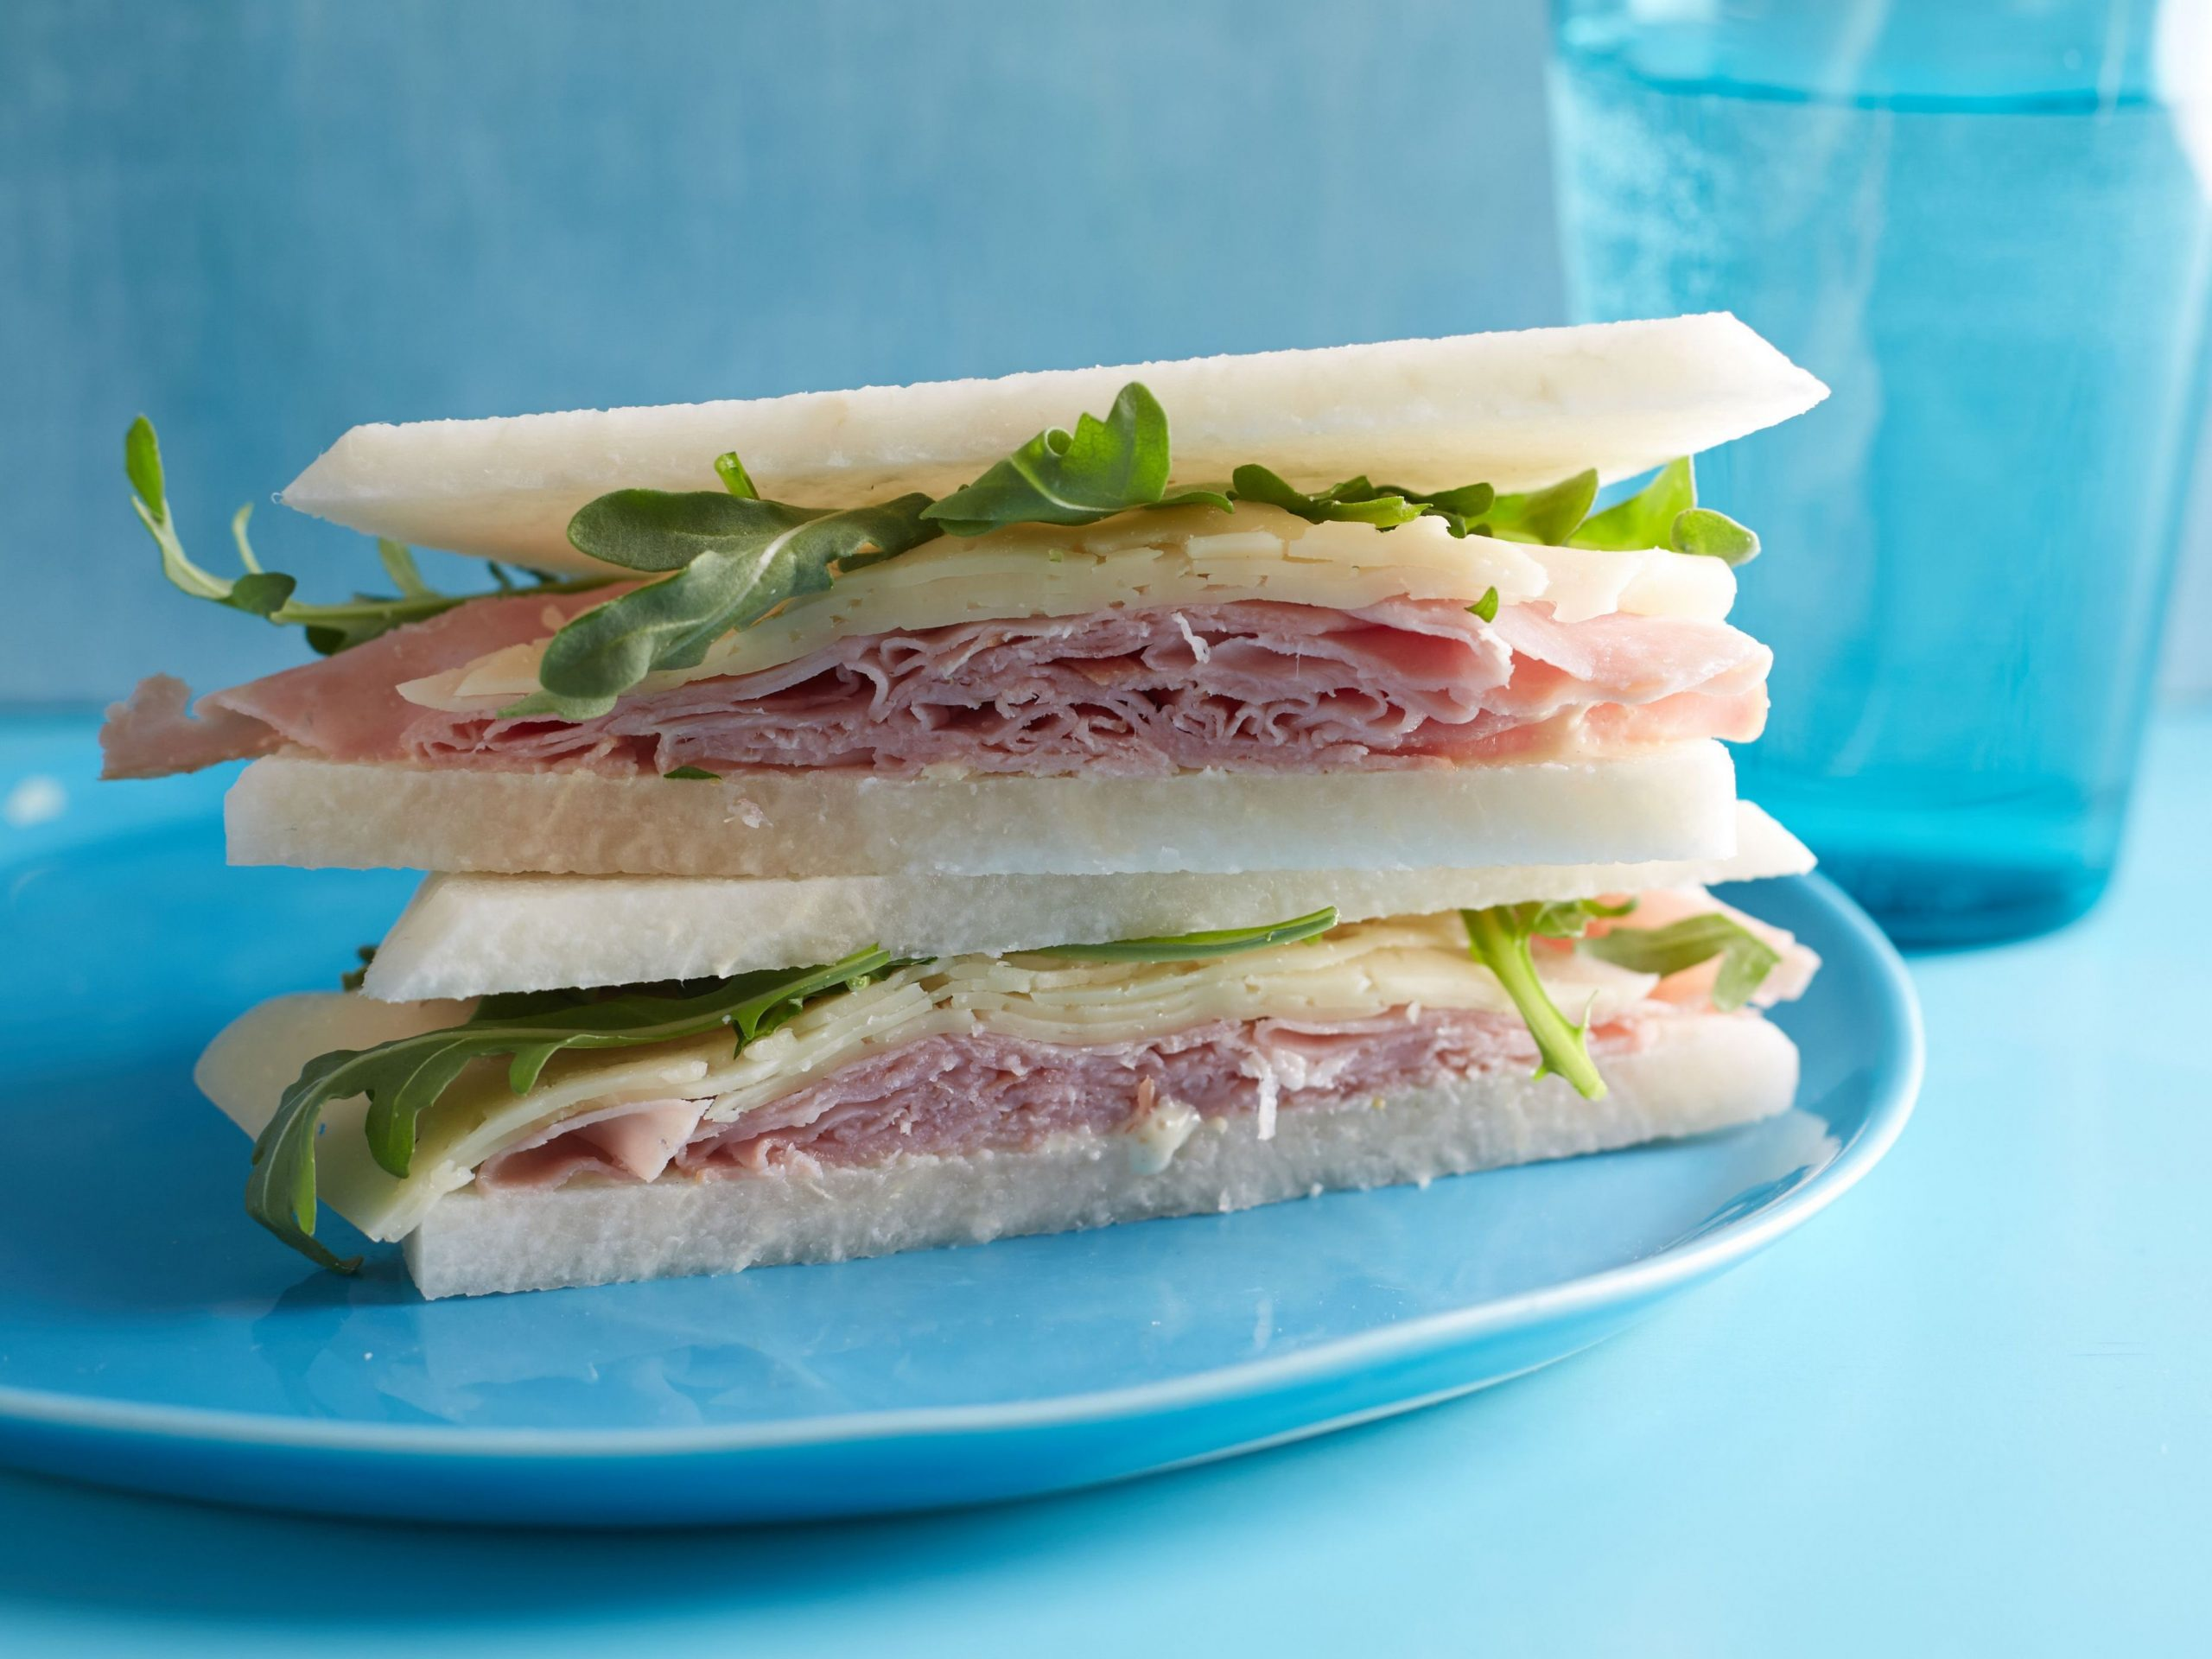 Breadless Ham and Cheese Sandwiches - Sandwich Recipes Food Network